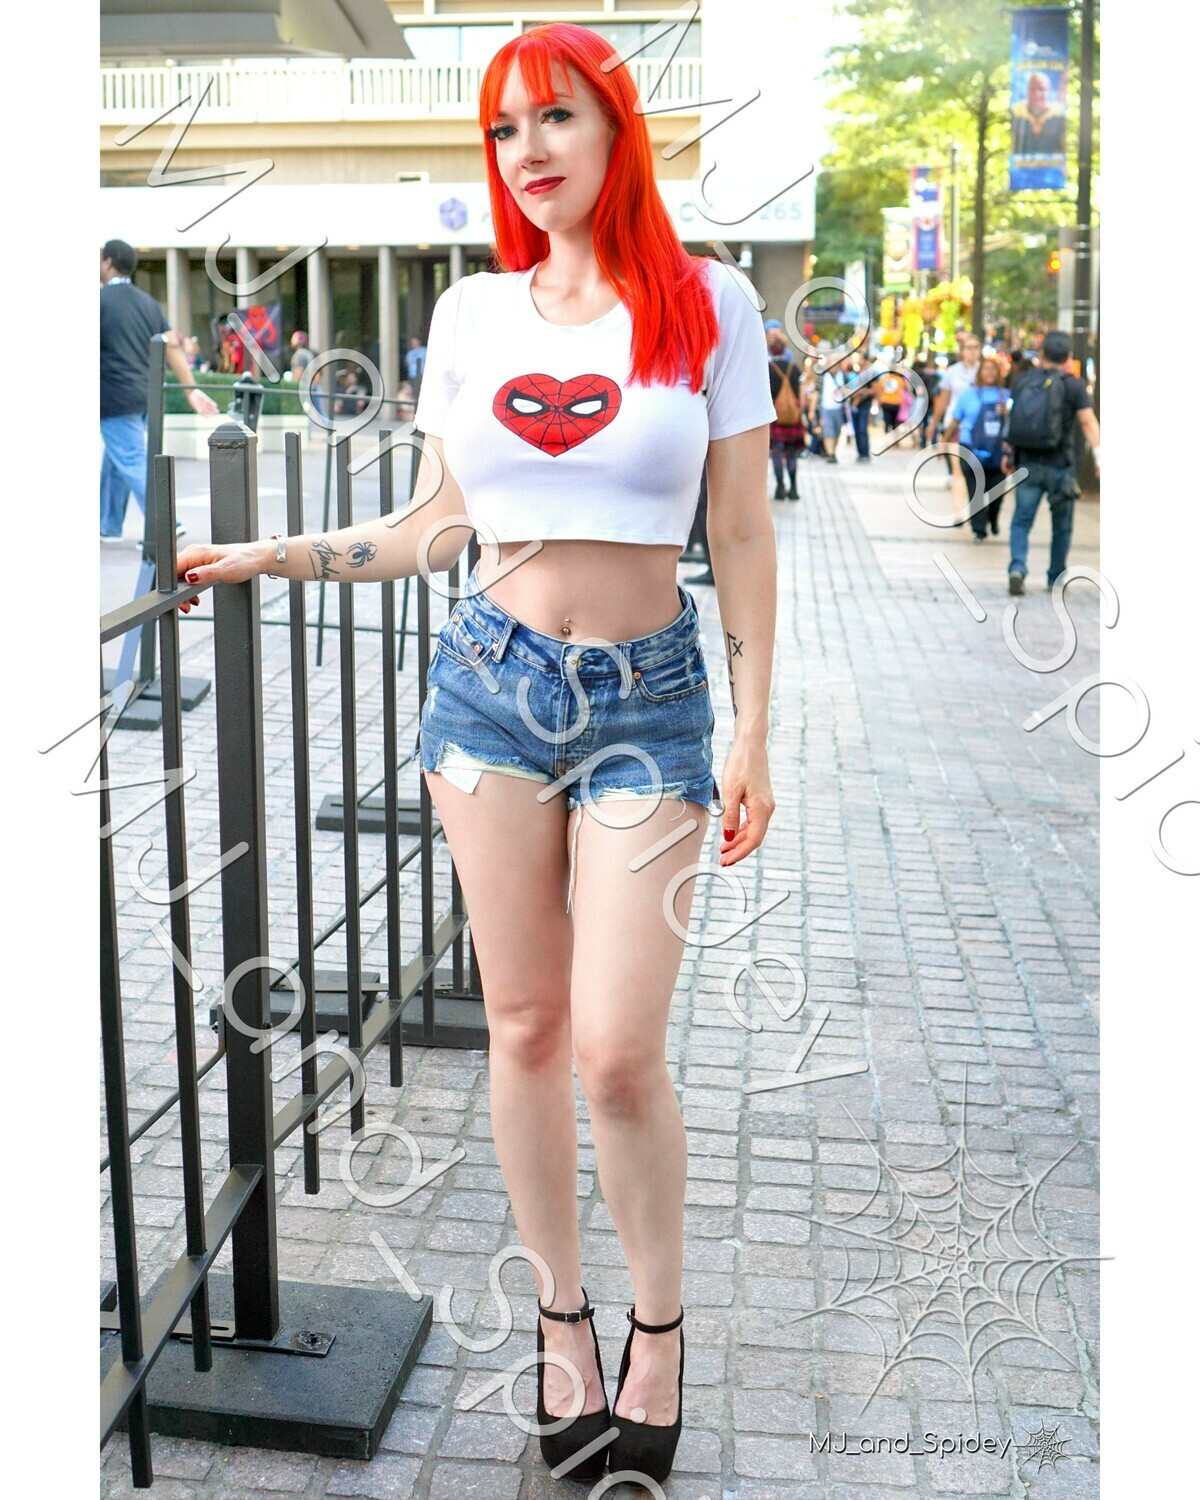 Marvel - Spider-Man - Mary Jane Watson - Classic No. 4 - Digital Cosplay Image (@MJ_and_Spidey, MJ and Spidey, Comics)